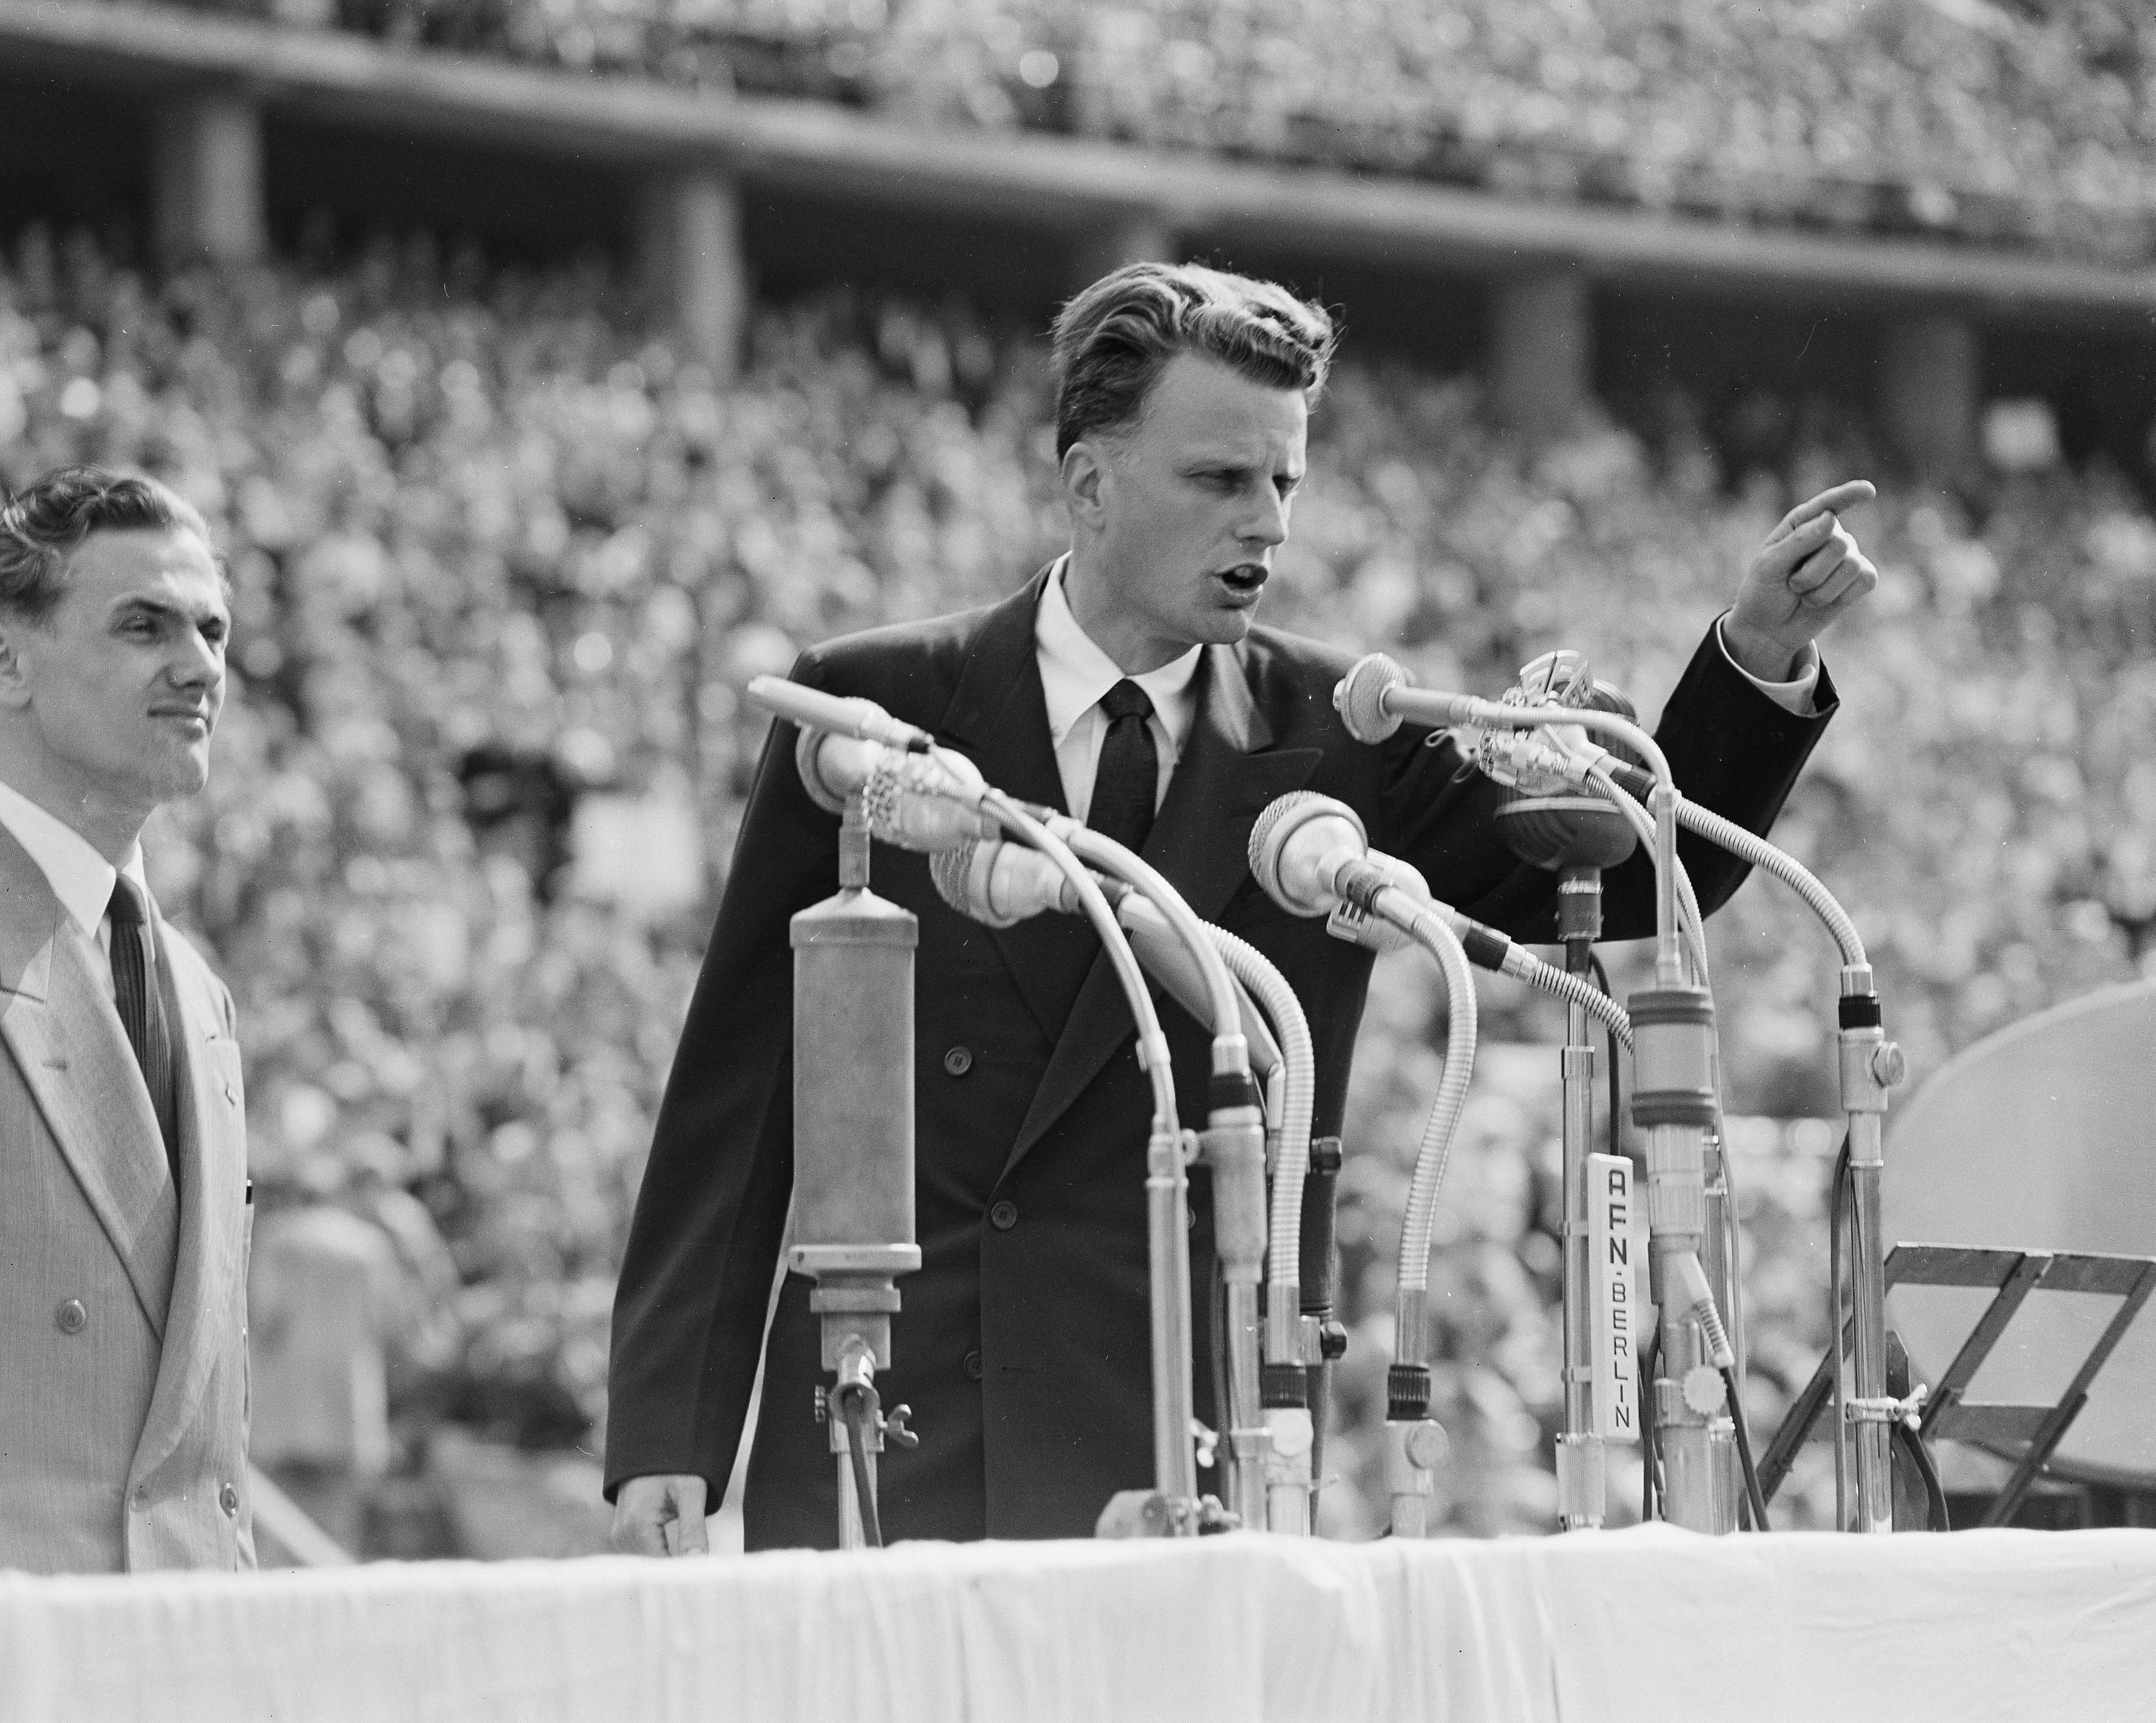 Evangelist Billy Graham addressed more than 100,000 Berliners at the Olympic Stadium in Germany on June 27, 1954.